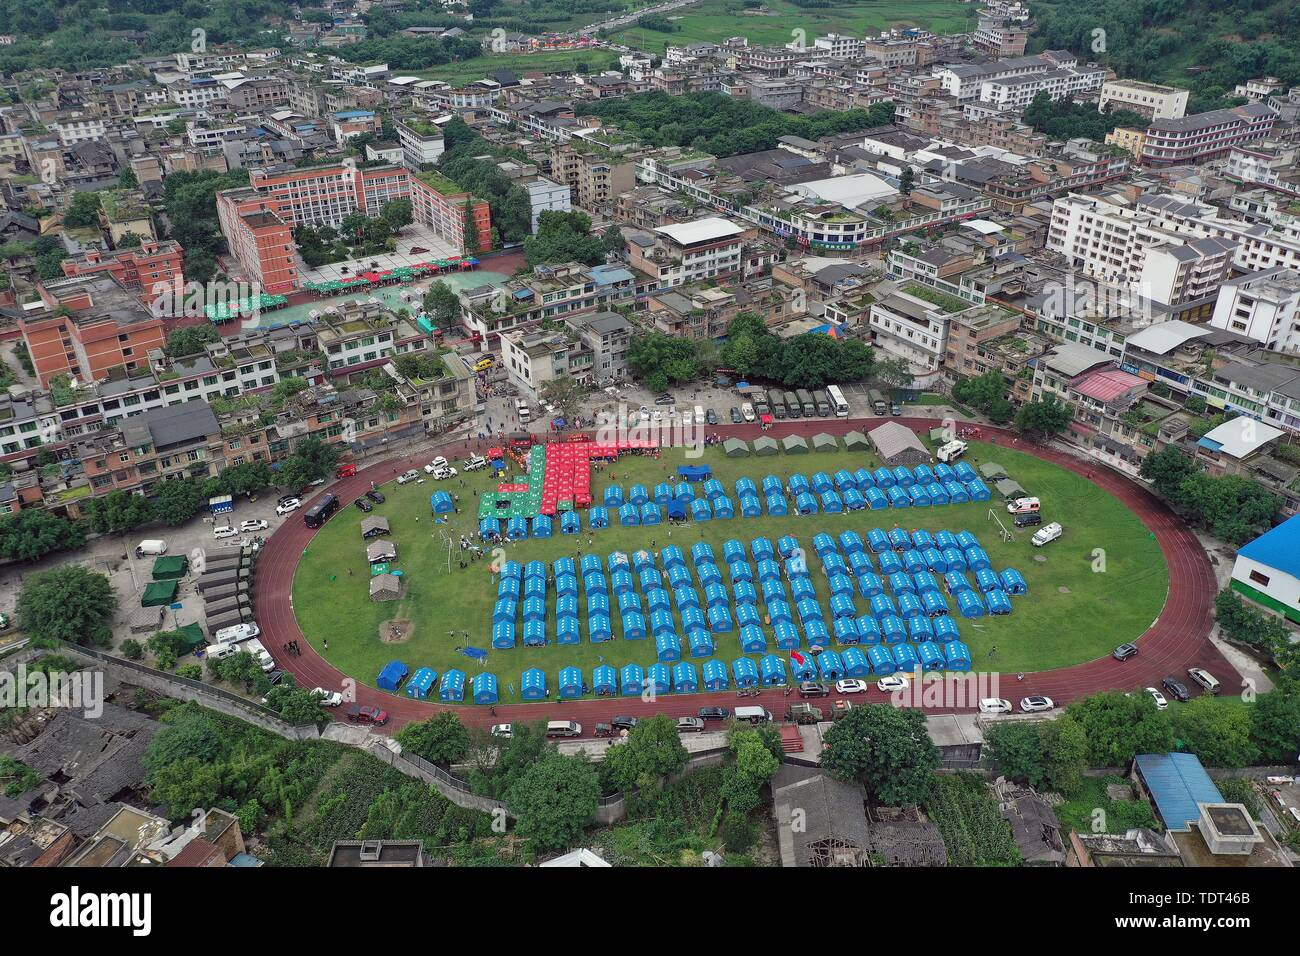 Changning. 18th June, 2019. Aerial photo taken on June 18, 2019 shows tents at a temporary shelter of Shuanghe Town High School in Changning County of Yibin City, southwest China's Sichuan Province. Thirteen people died and 199 were injured after a 6.0-magnitude earthquake hit southwest China's Sichuan Province at 10:55 p.m. Monday, the Ministry of Emergency Management said Tuesday. Credit: Zeng Lang/Xinhua/Alamy Live News - Stock Image